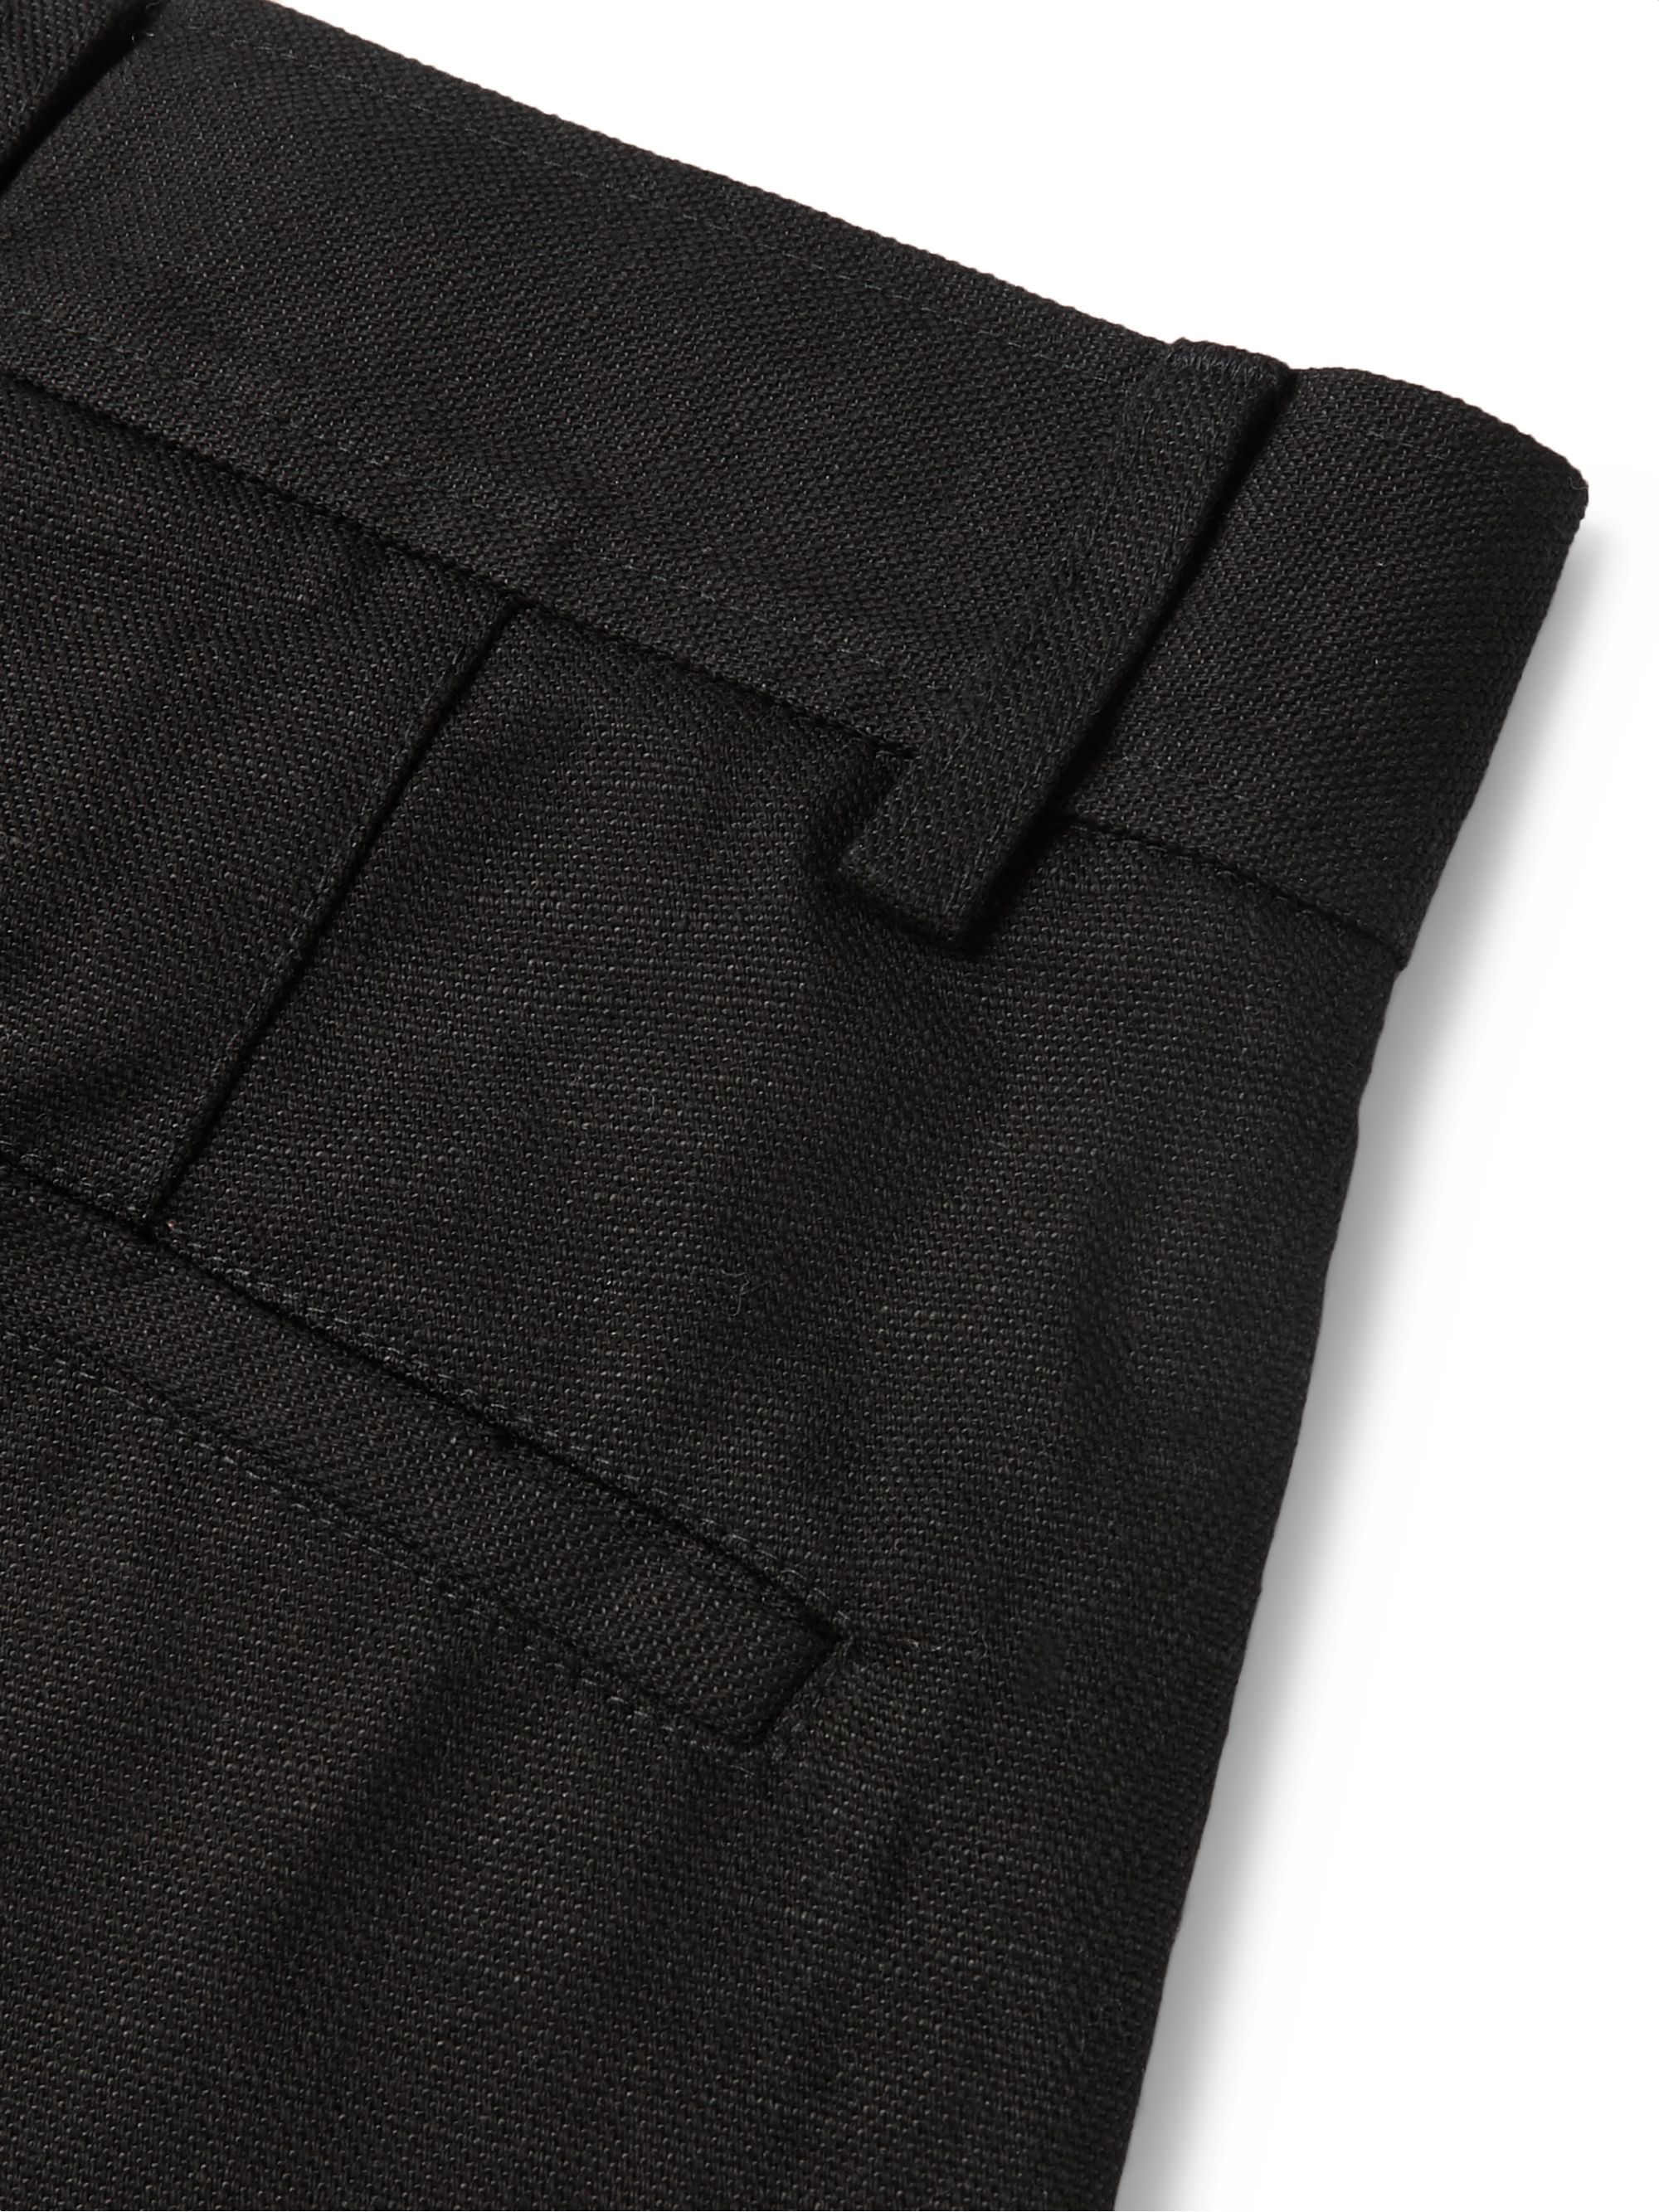 Séfr Black Mike Cotton and Linen-Blend Trousers